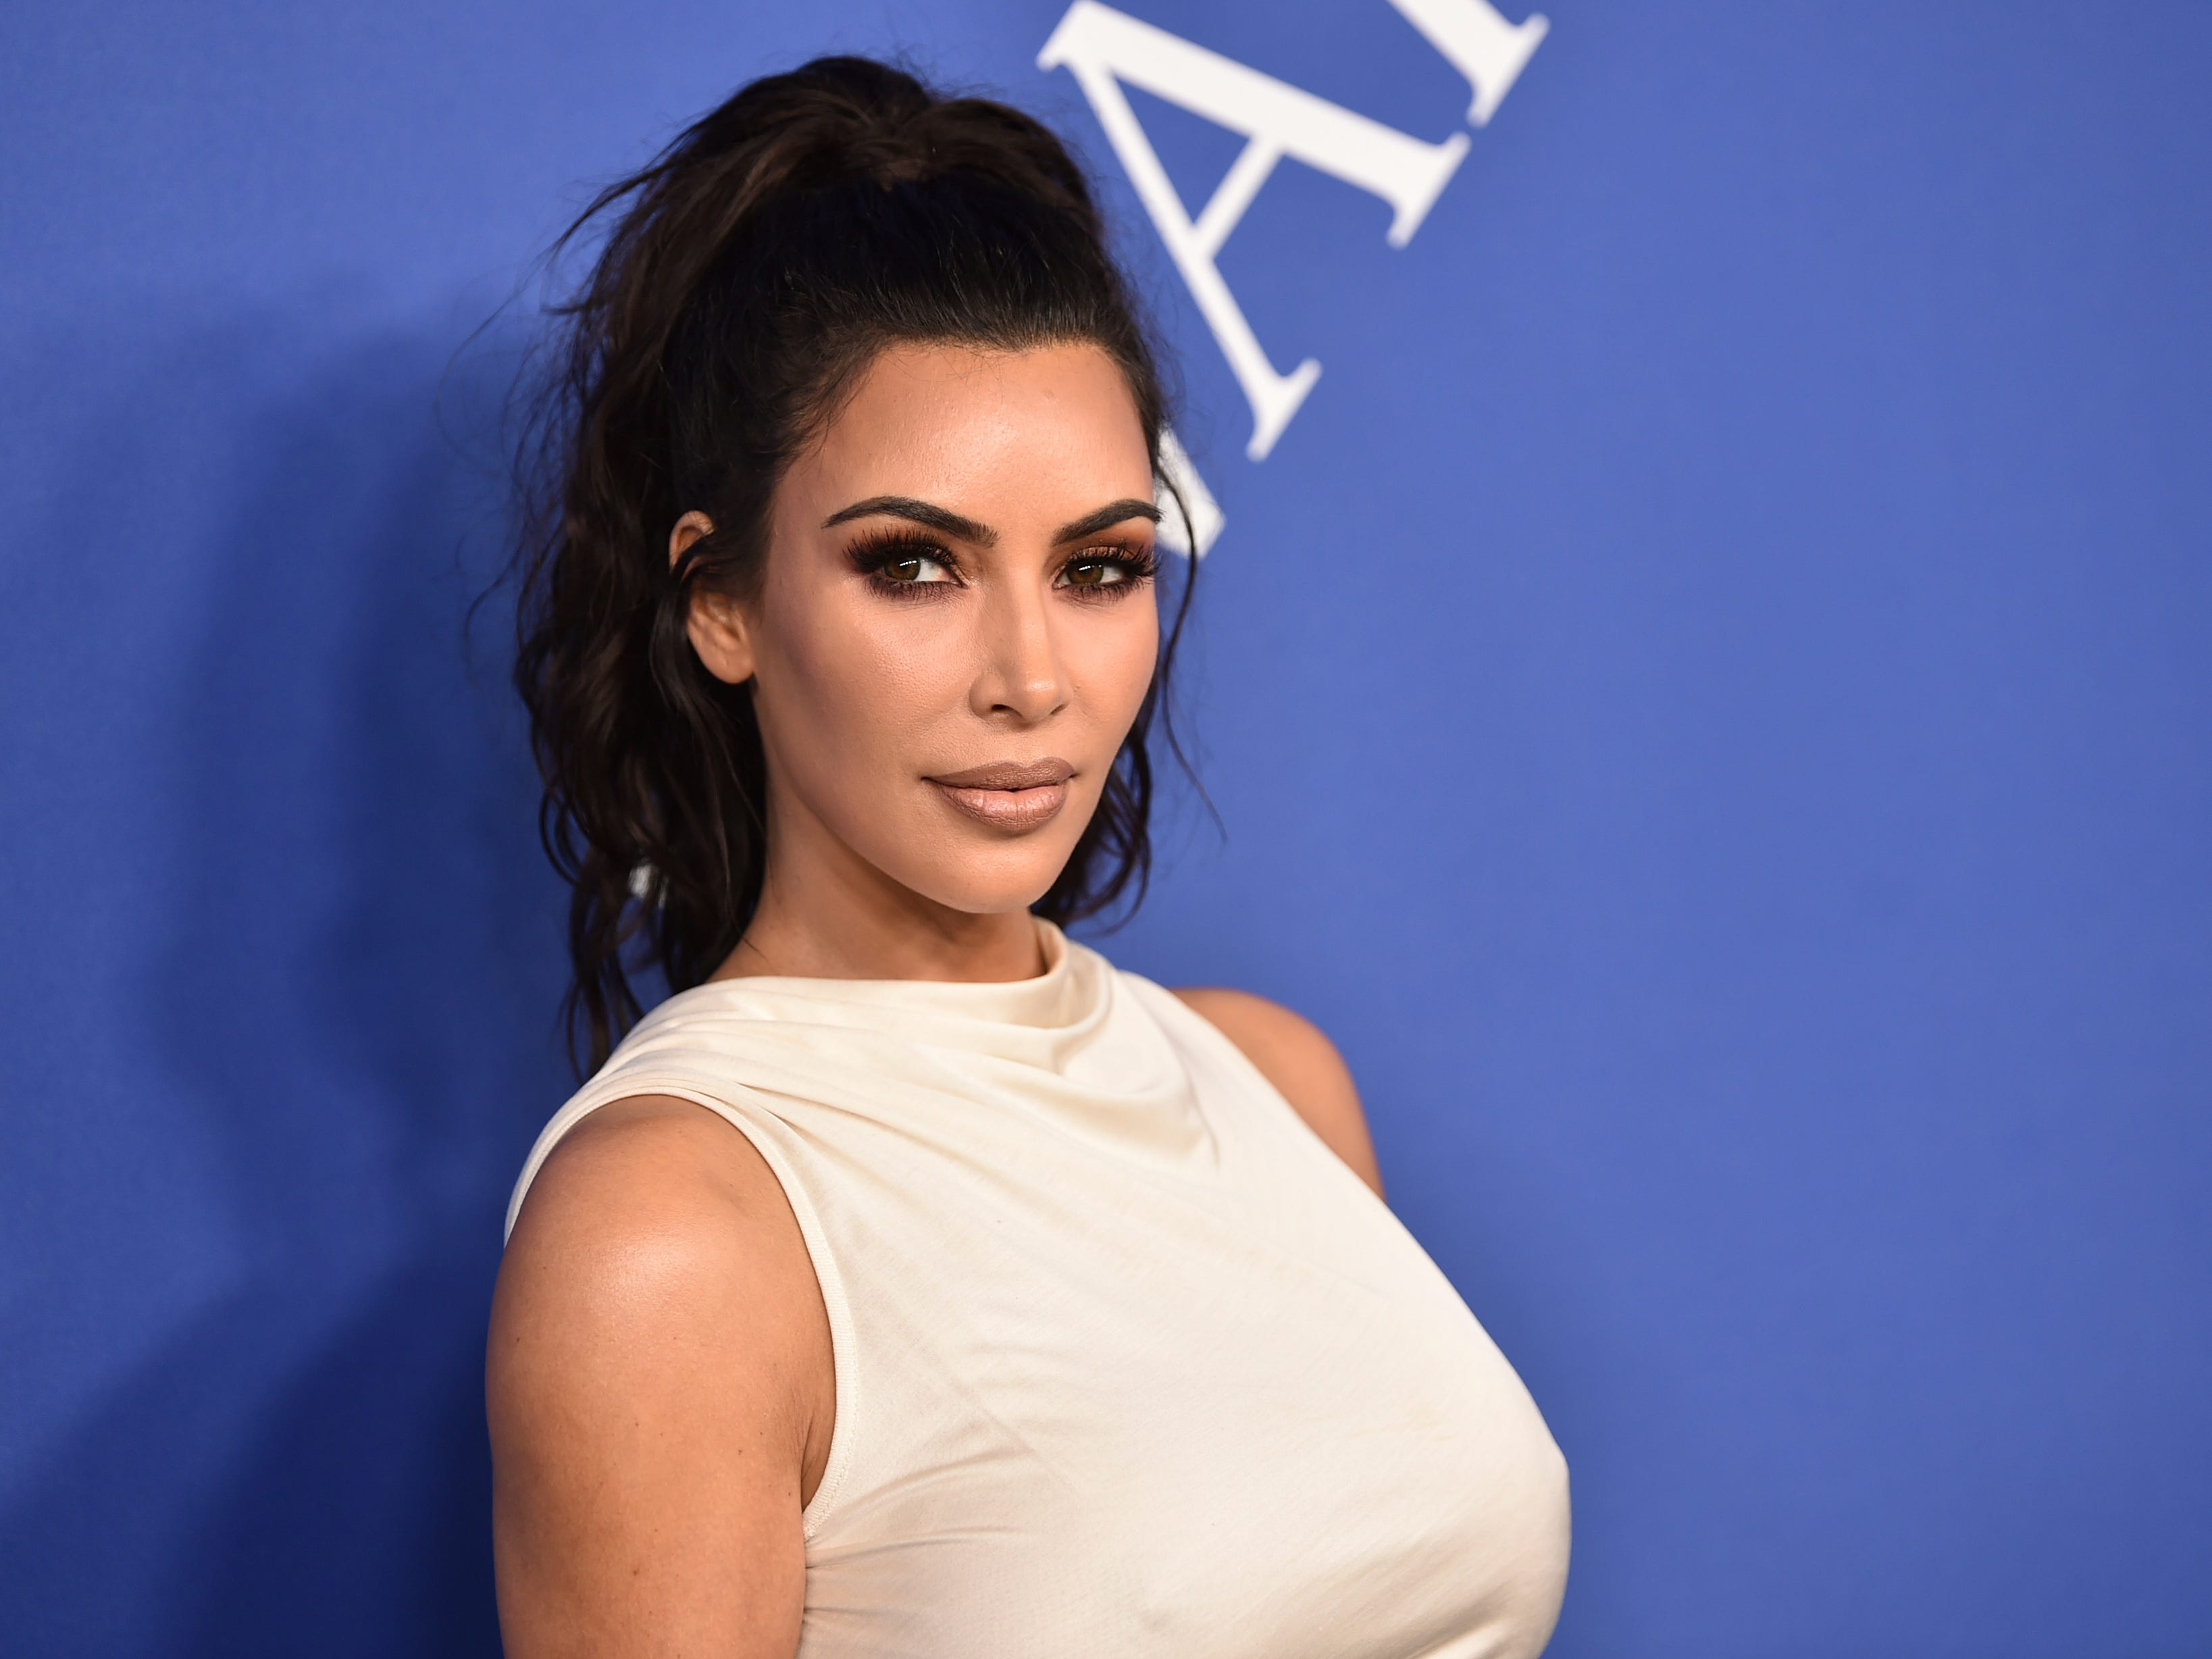 Yes, Kim Kardashian West wants to be a lawyer. And that's only a good thing.